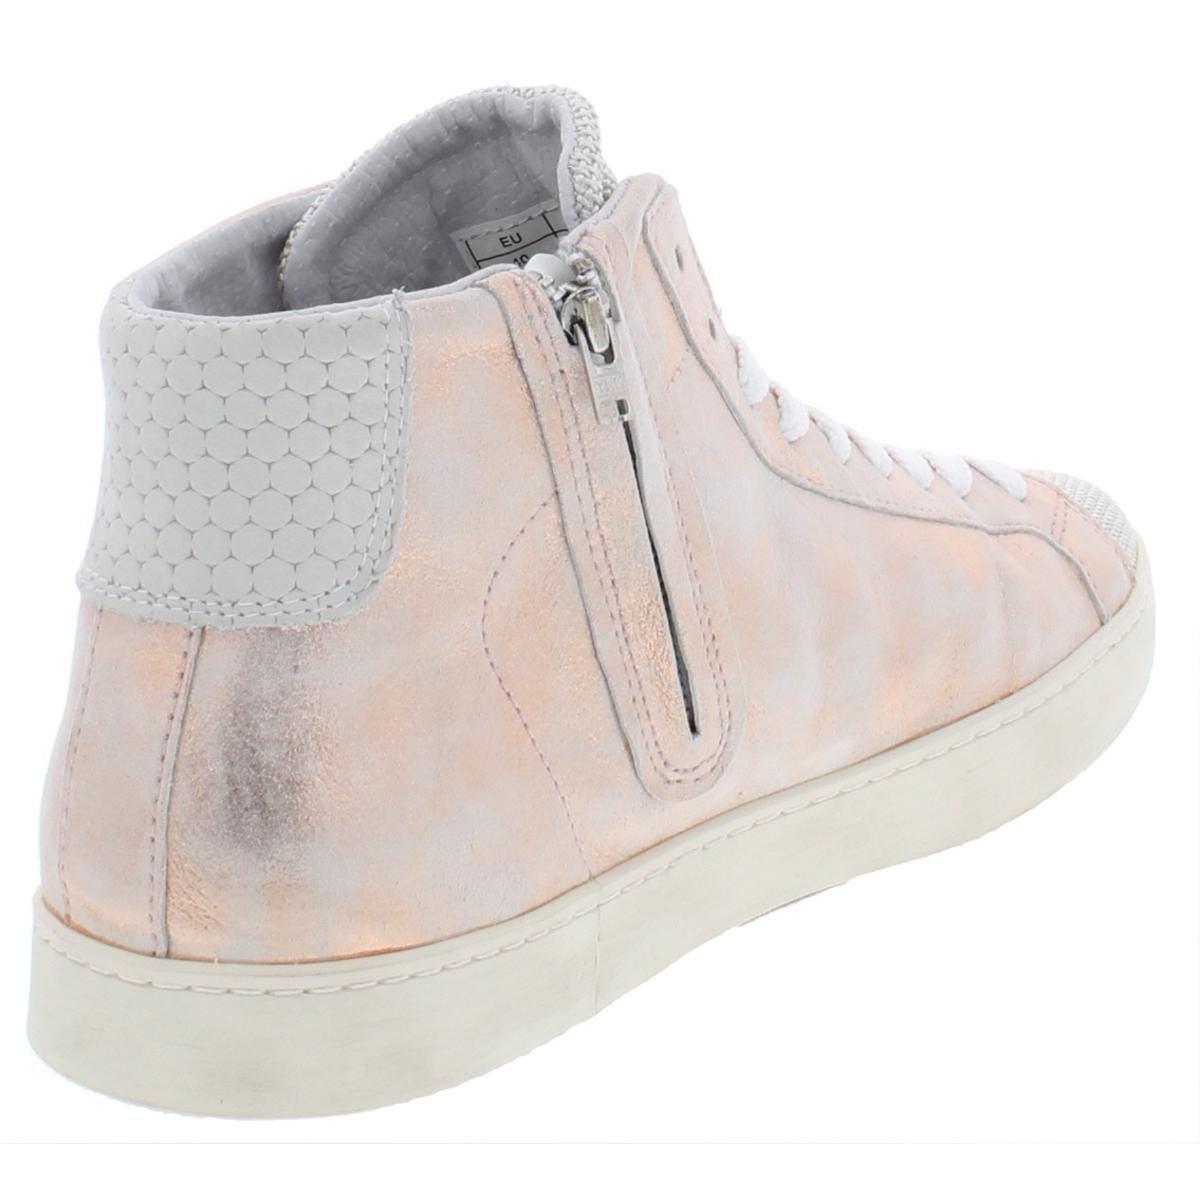 Steve-Madden-Womens-Hardwick-Leather-Fashion-High-Top-Sneakers-Shoes-BHFO-9054 thumbnail 4